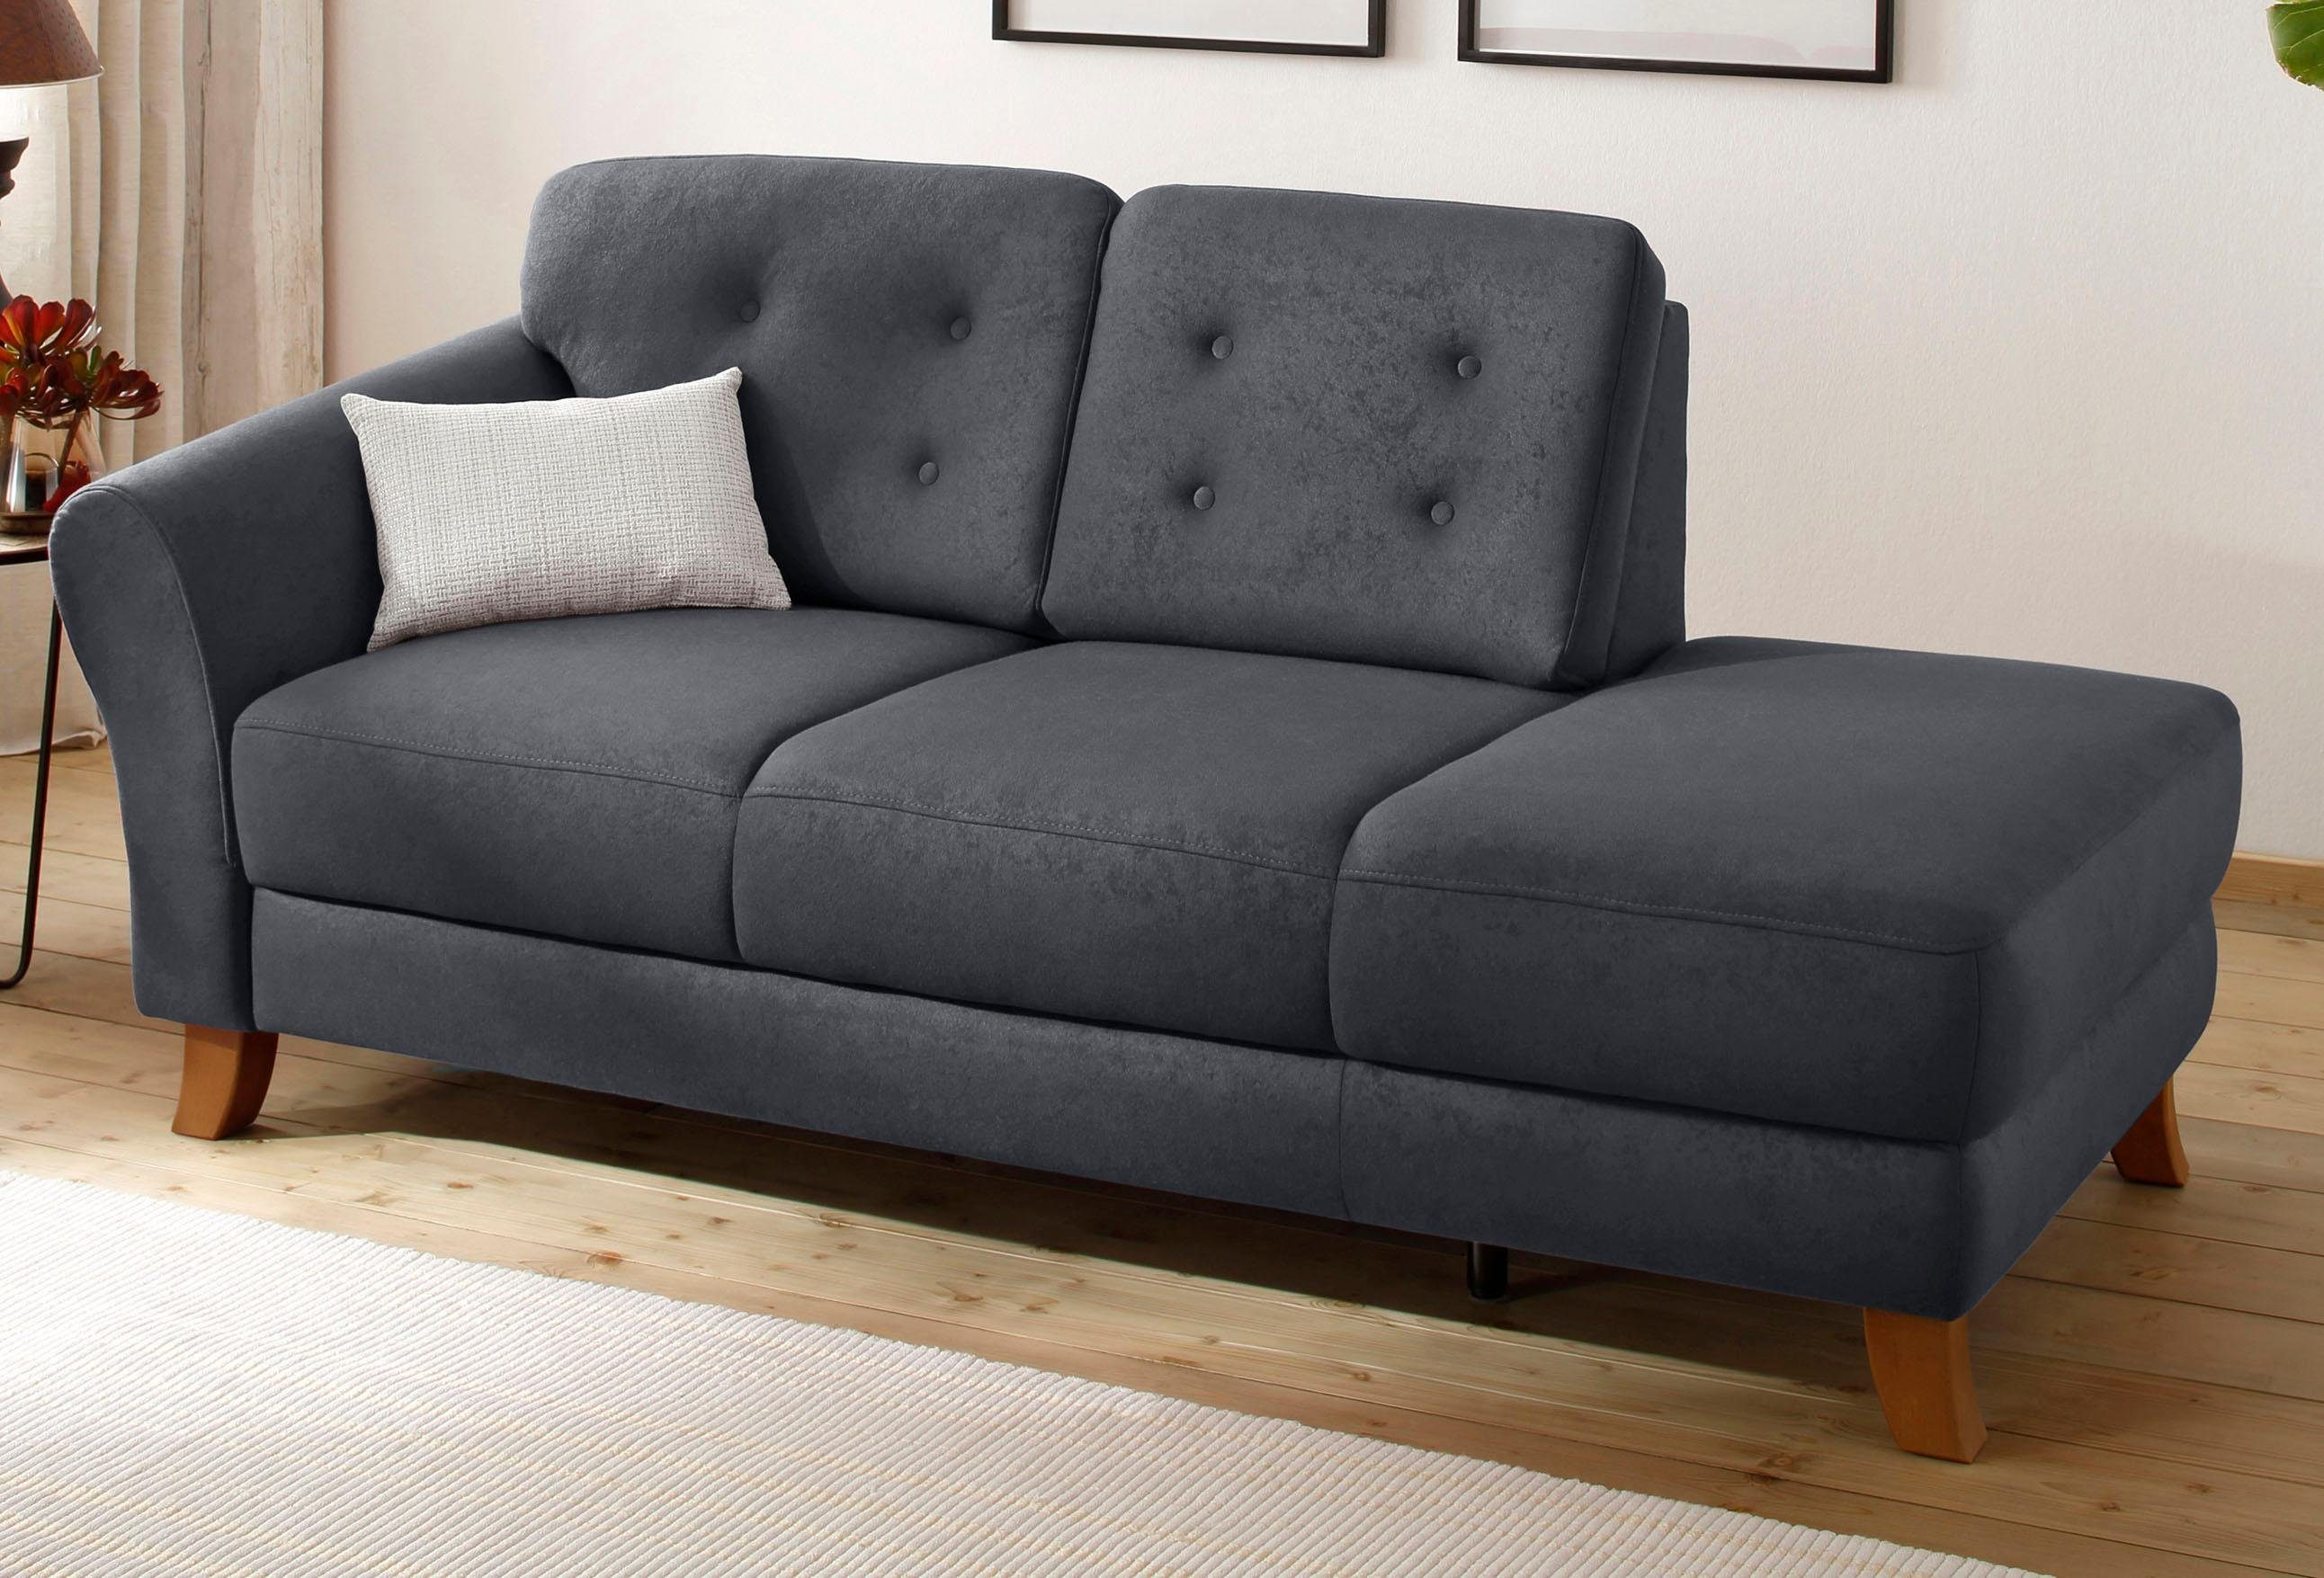 Sofa Mit Federkern Oder Ohne Couch Federkern Awesome Mega With Couch Federkern Sofa